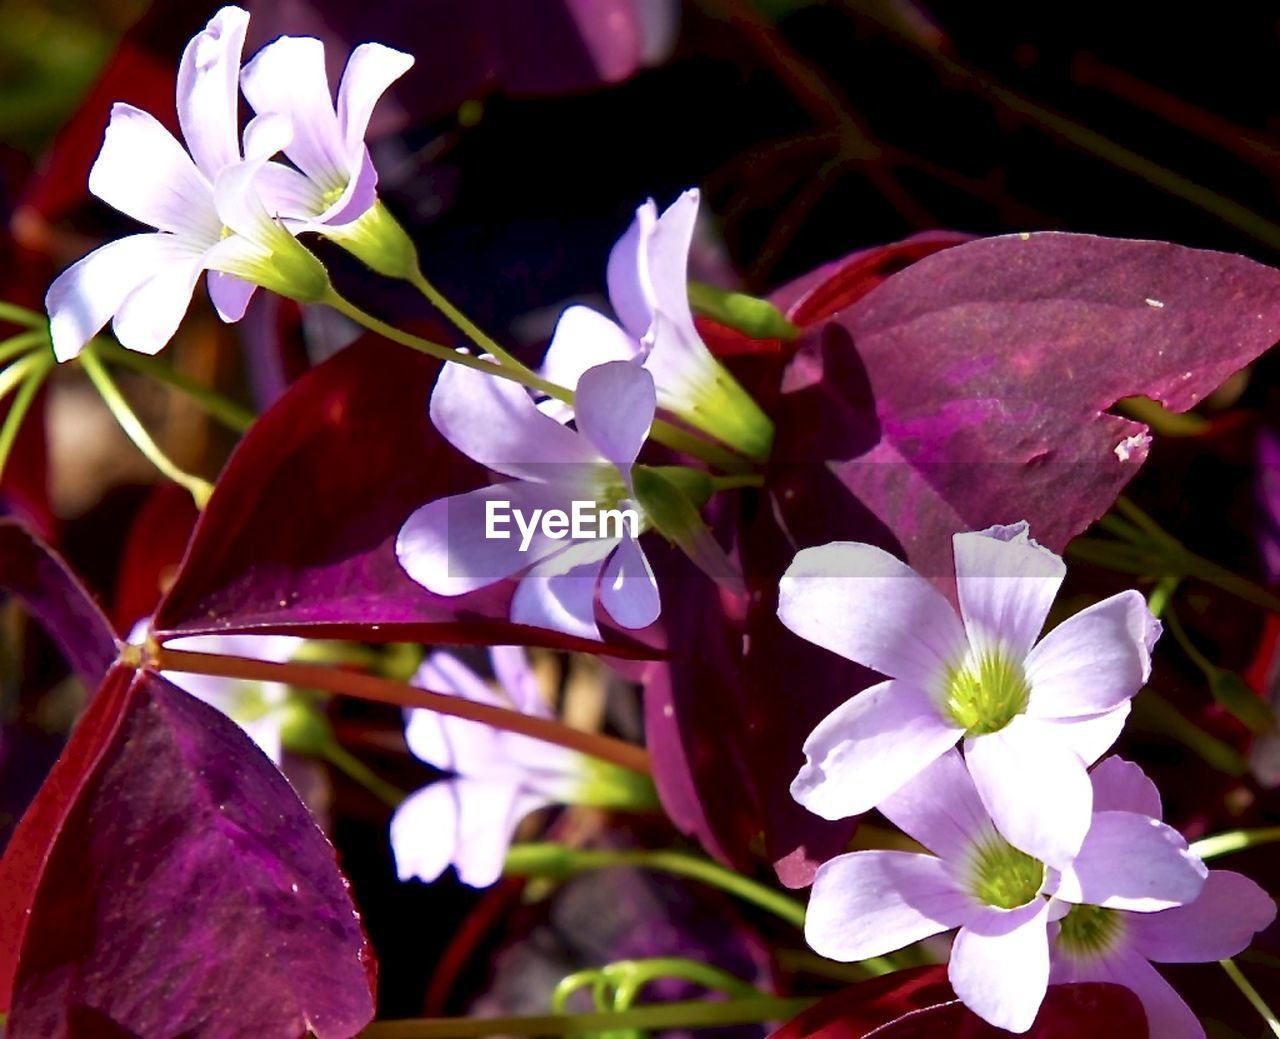 flower, petal, fragility, nature, growth, beauty in nature, freshness, no people, flower head, close-up, blooming, outdoors, plant, day